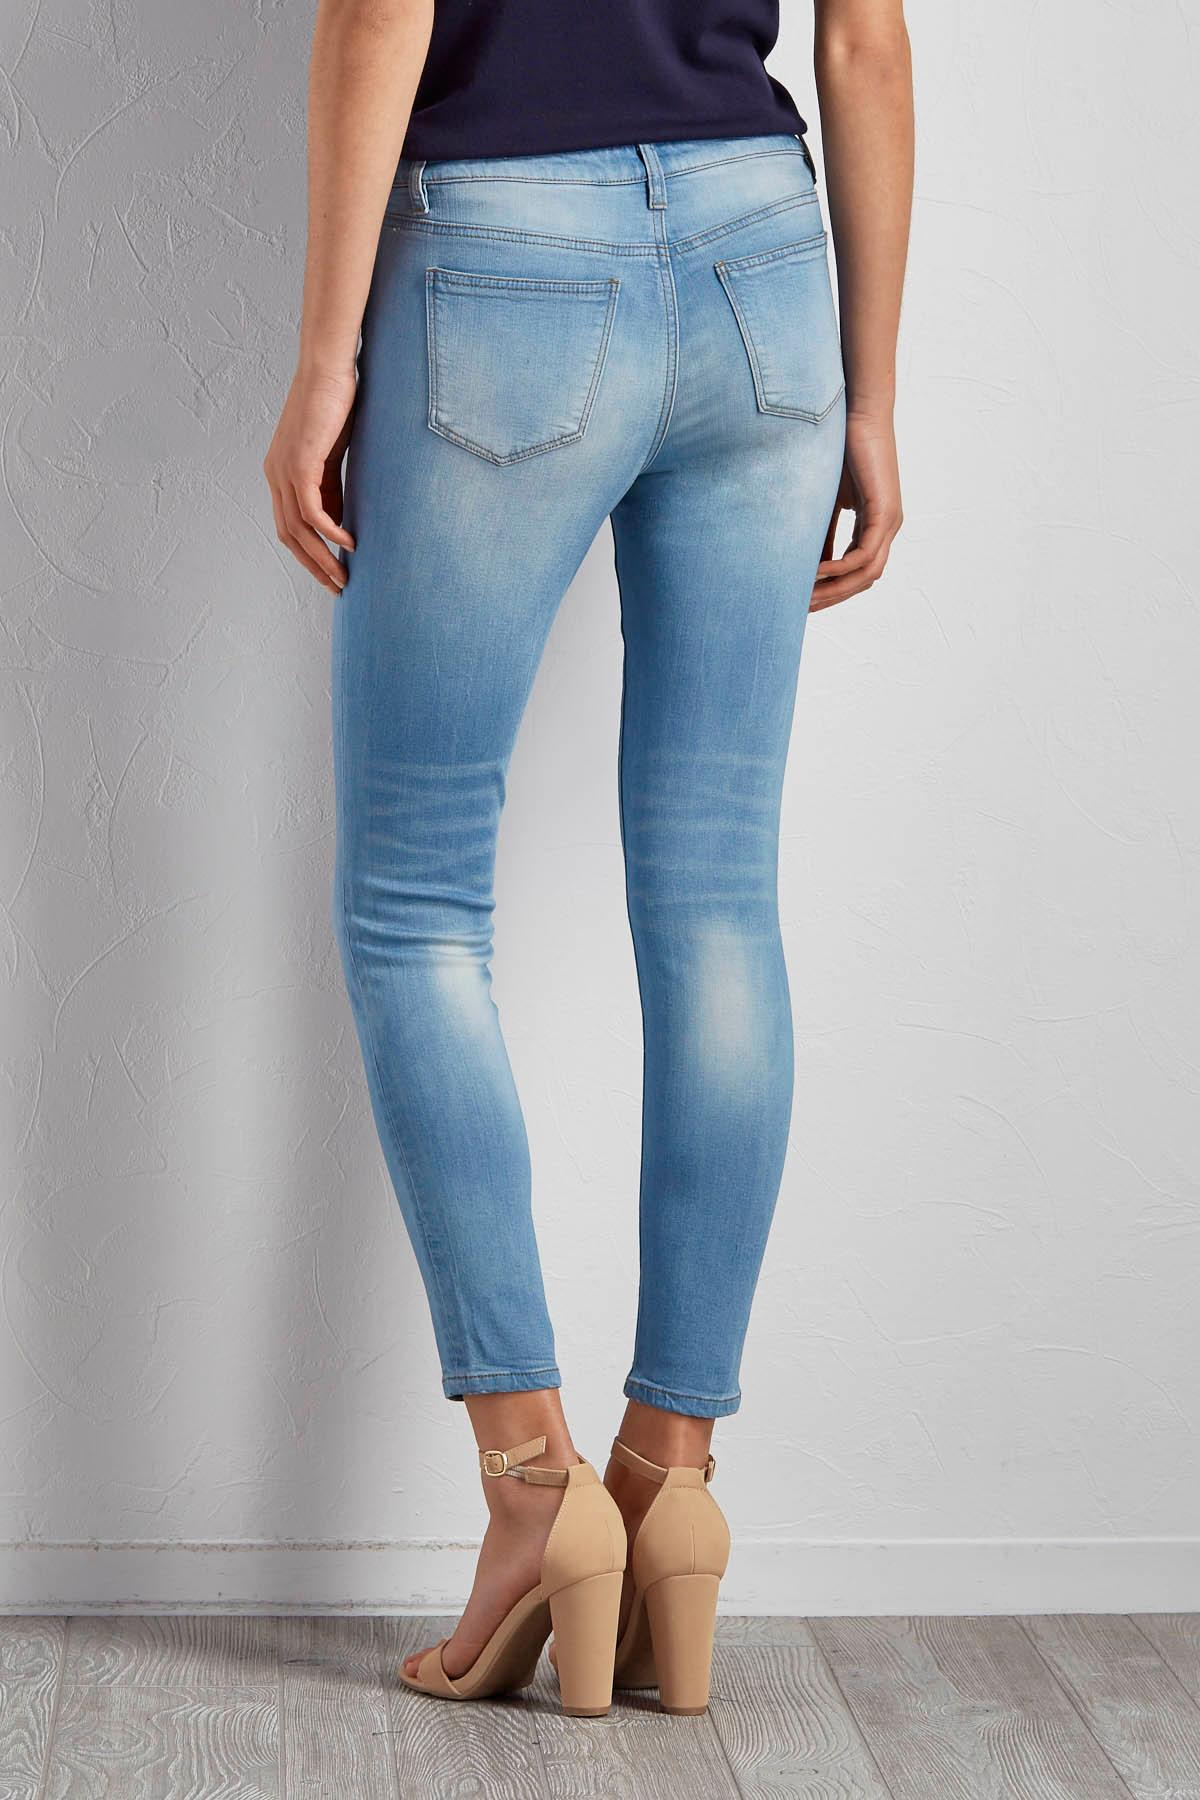 Versona | light wash skinny jeans